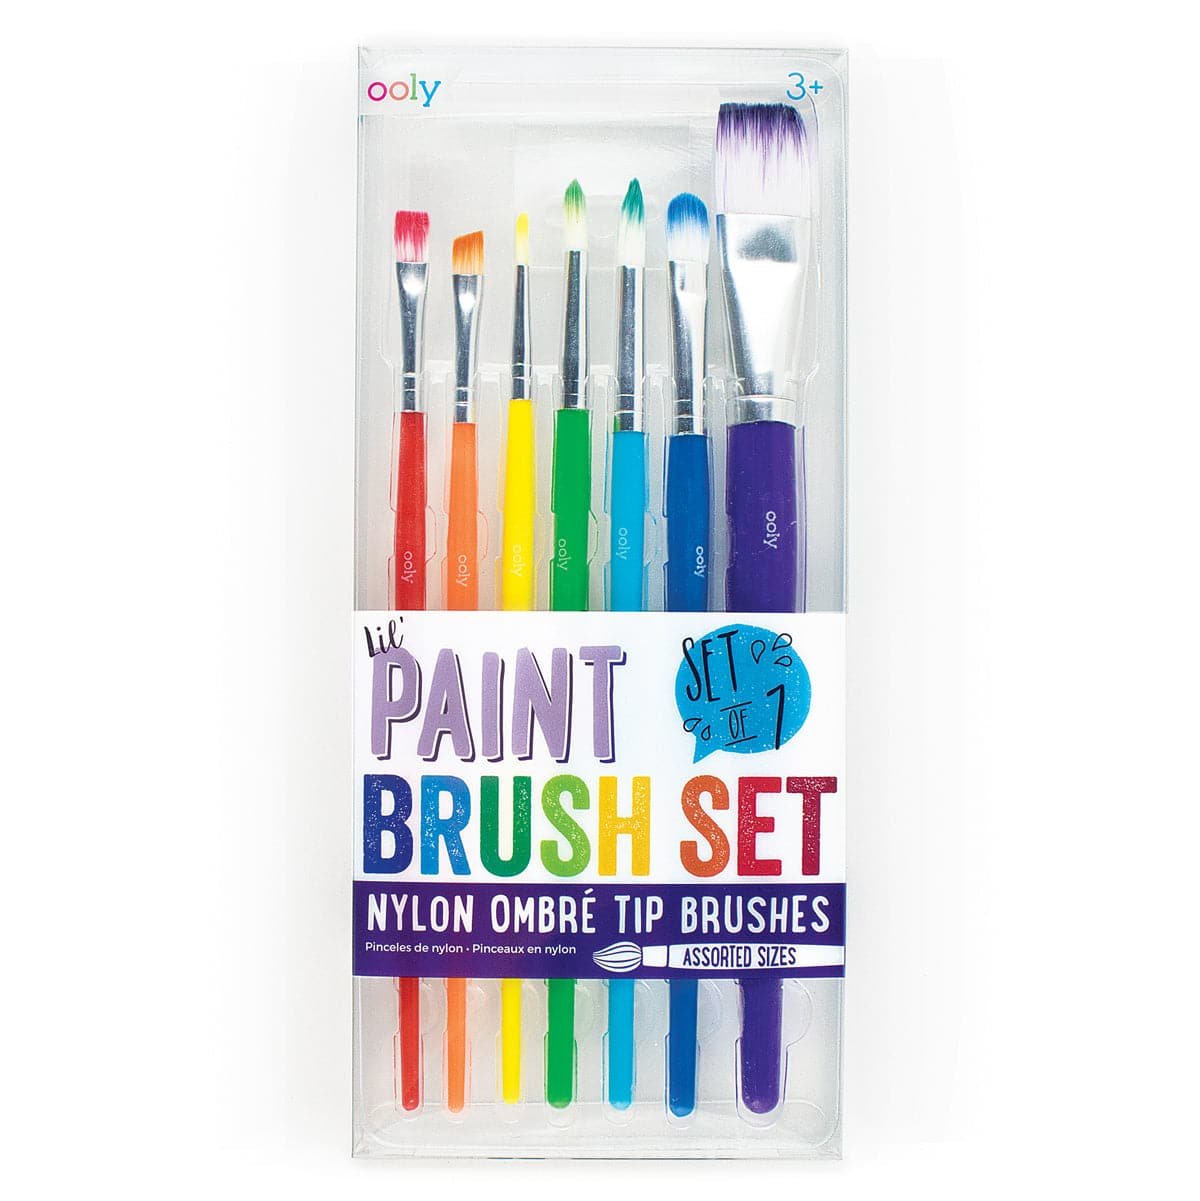 Lil' Paint Brushes - Set of 7